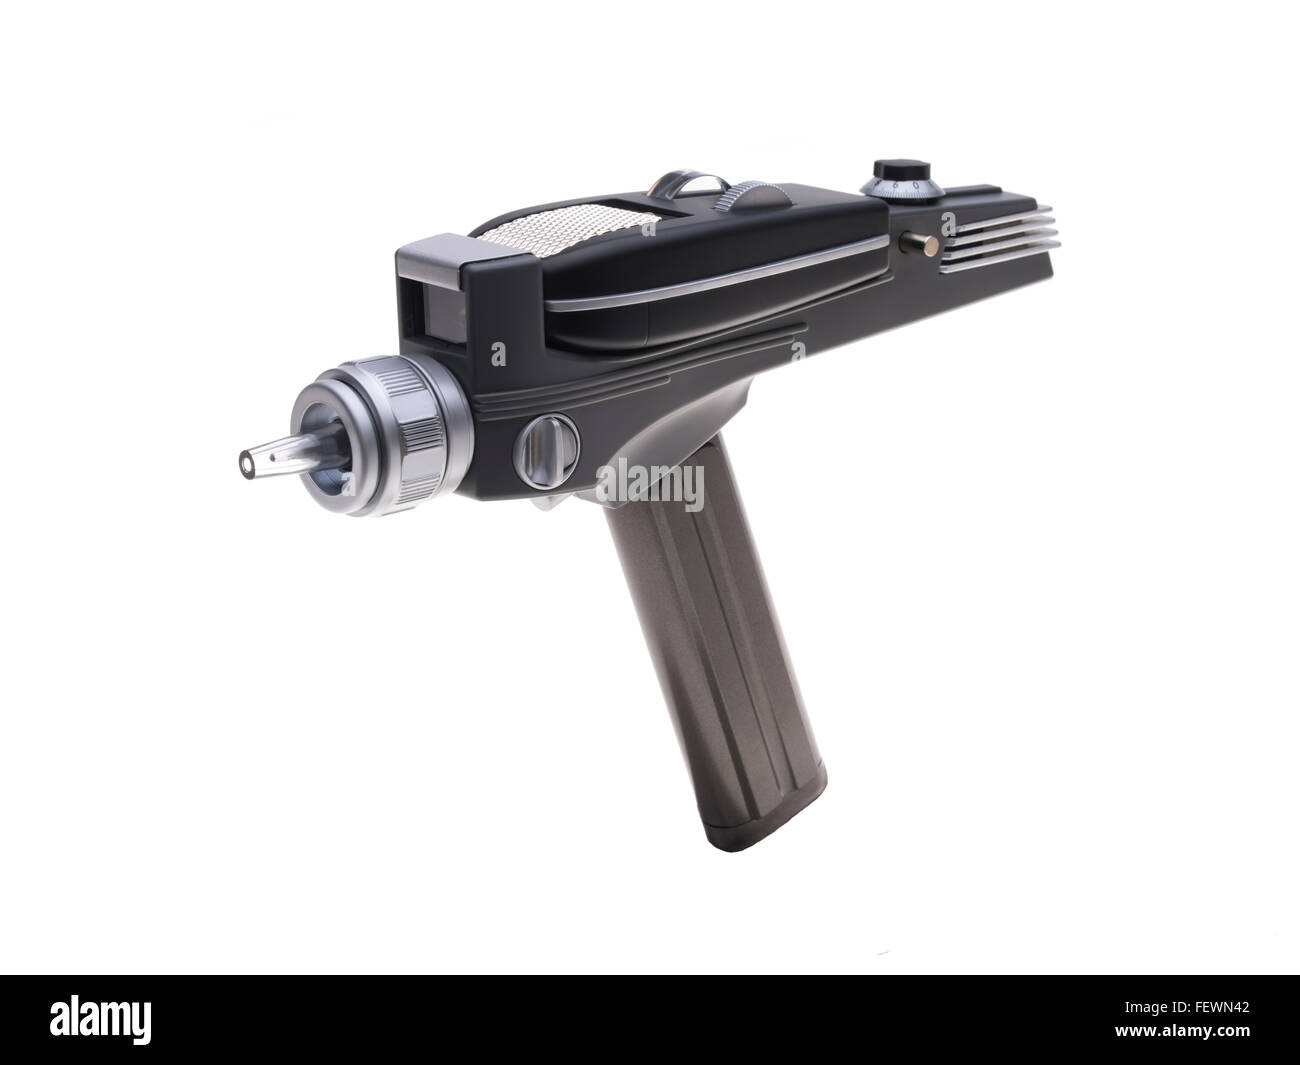 Star Trek the original TV series 1966 Phaser weapon that could kill or stun ( lethal or non lethal force ) Science - Stock Image